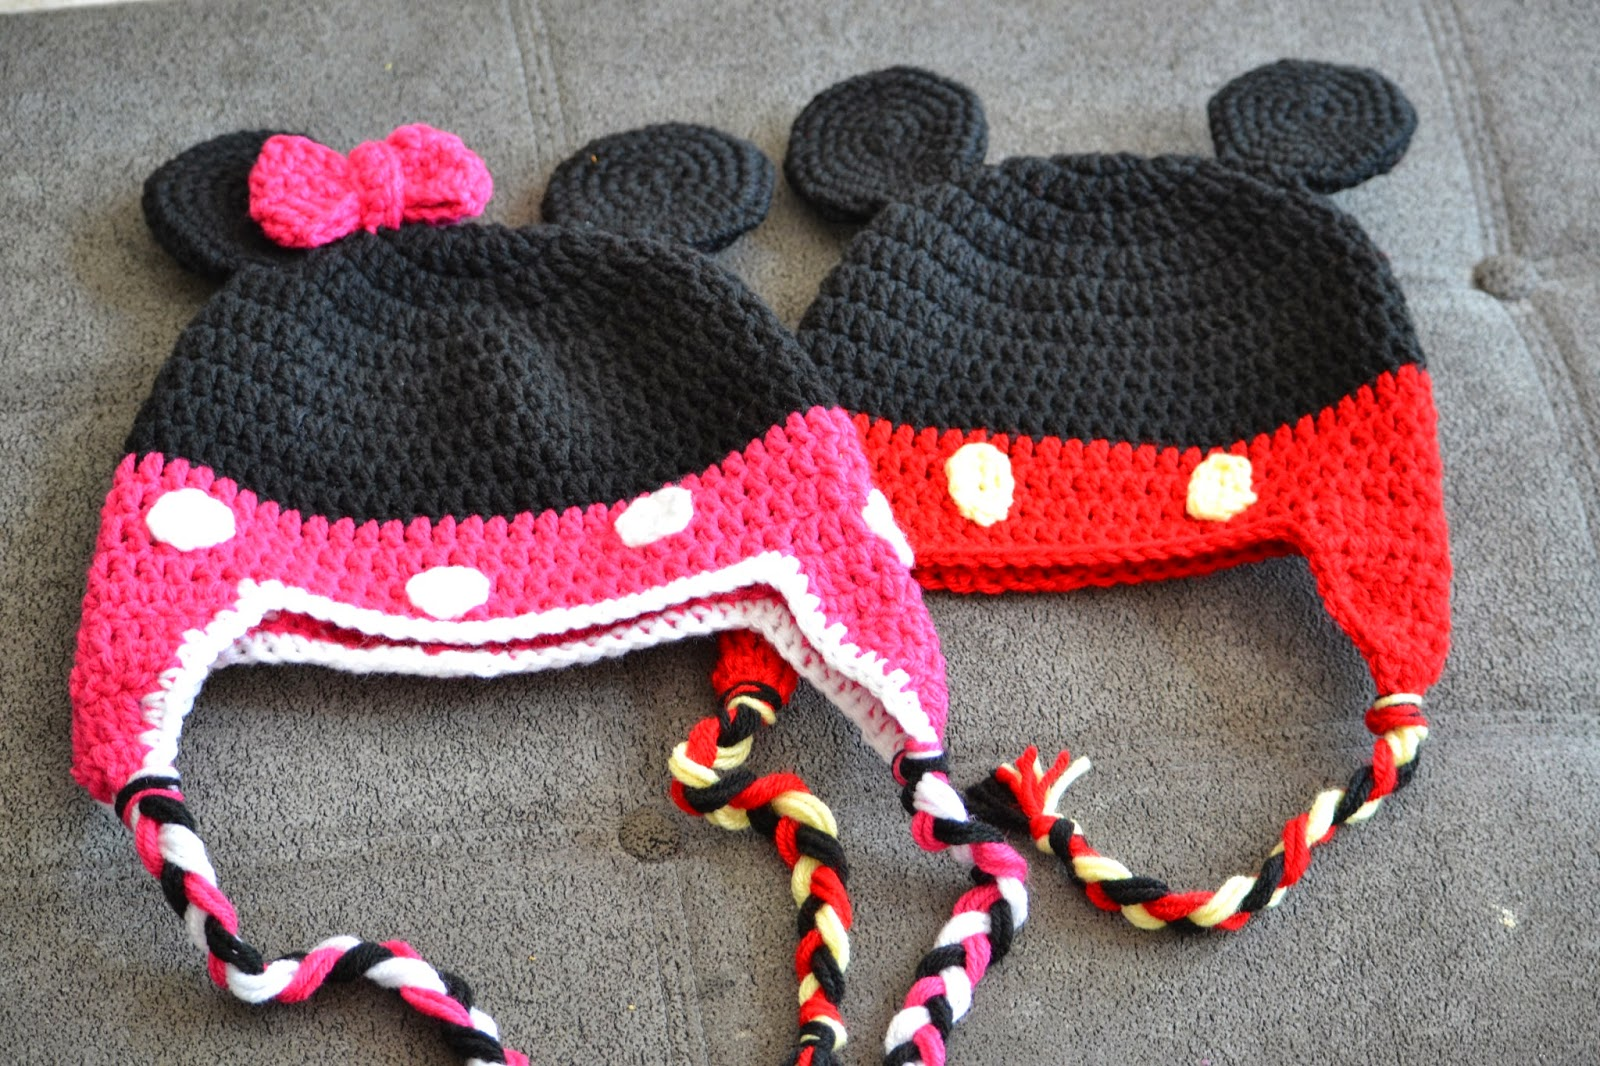 Free Crochet Pattern For Mickey Mouse Shoes : Crochet Pattern Mickey Mouse Shoes Joy Studio Design ...